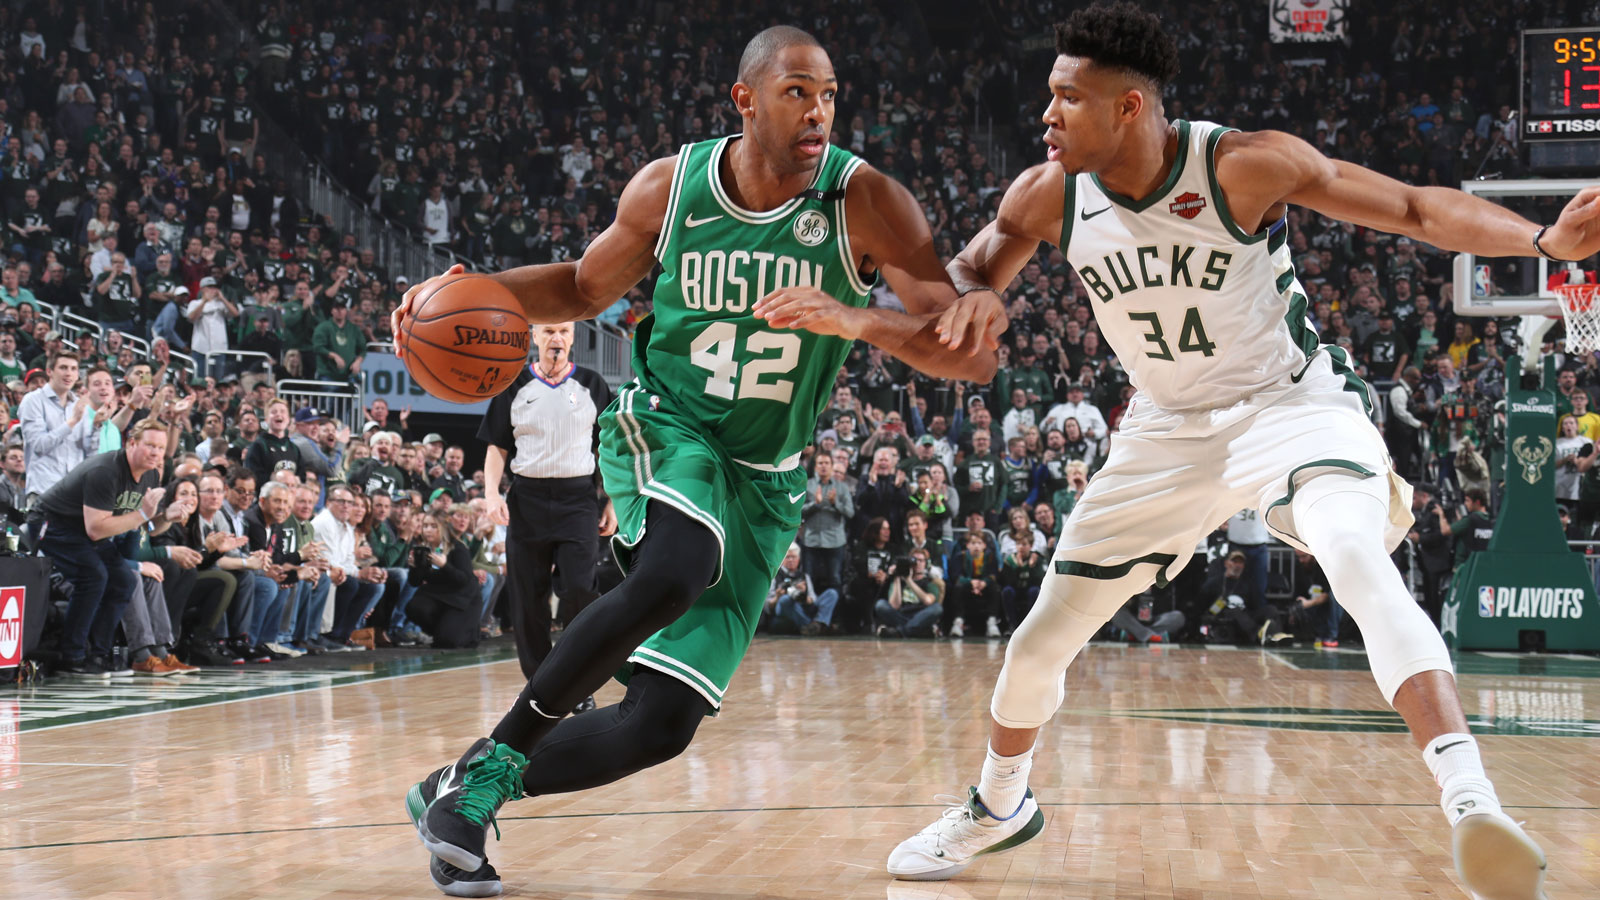 Al Horford #42 of the Boston Celtics drives to the basket against the Milwaukee Bucks during Game Five of the Eastern Conference Semifinals of the 2019 NBA Playoffs on May 8, 2019 at the Fiserv Forum in Milwaukee, Wisconsin.